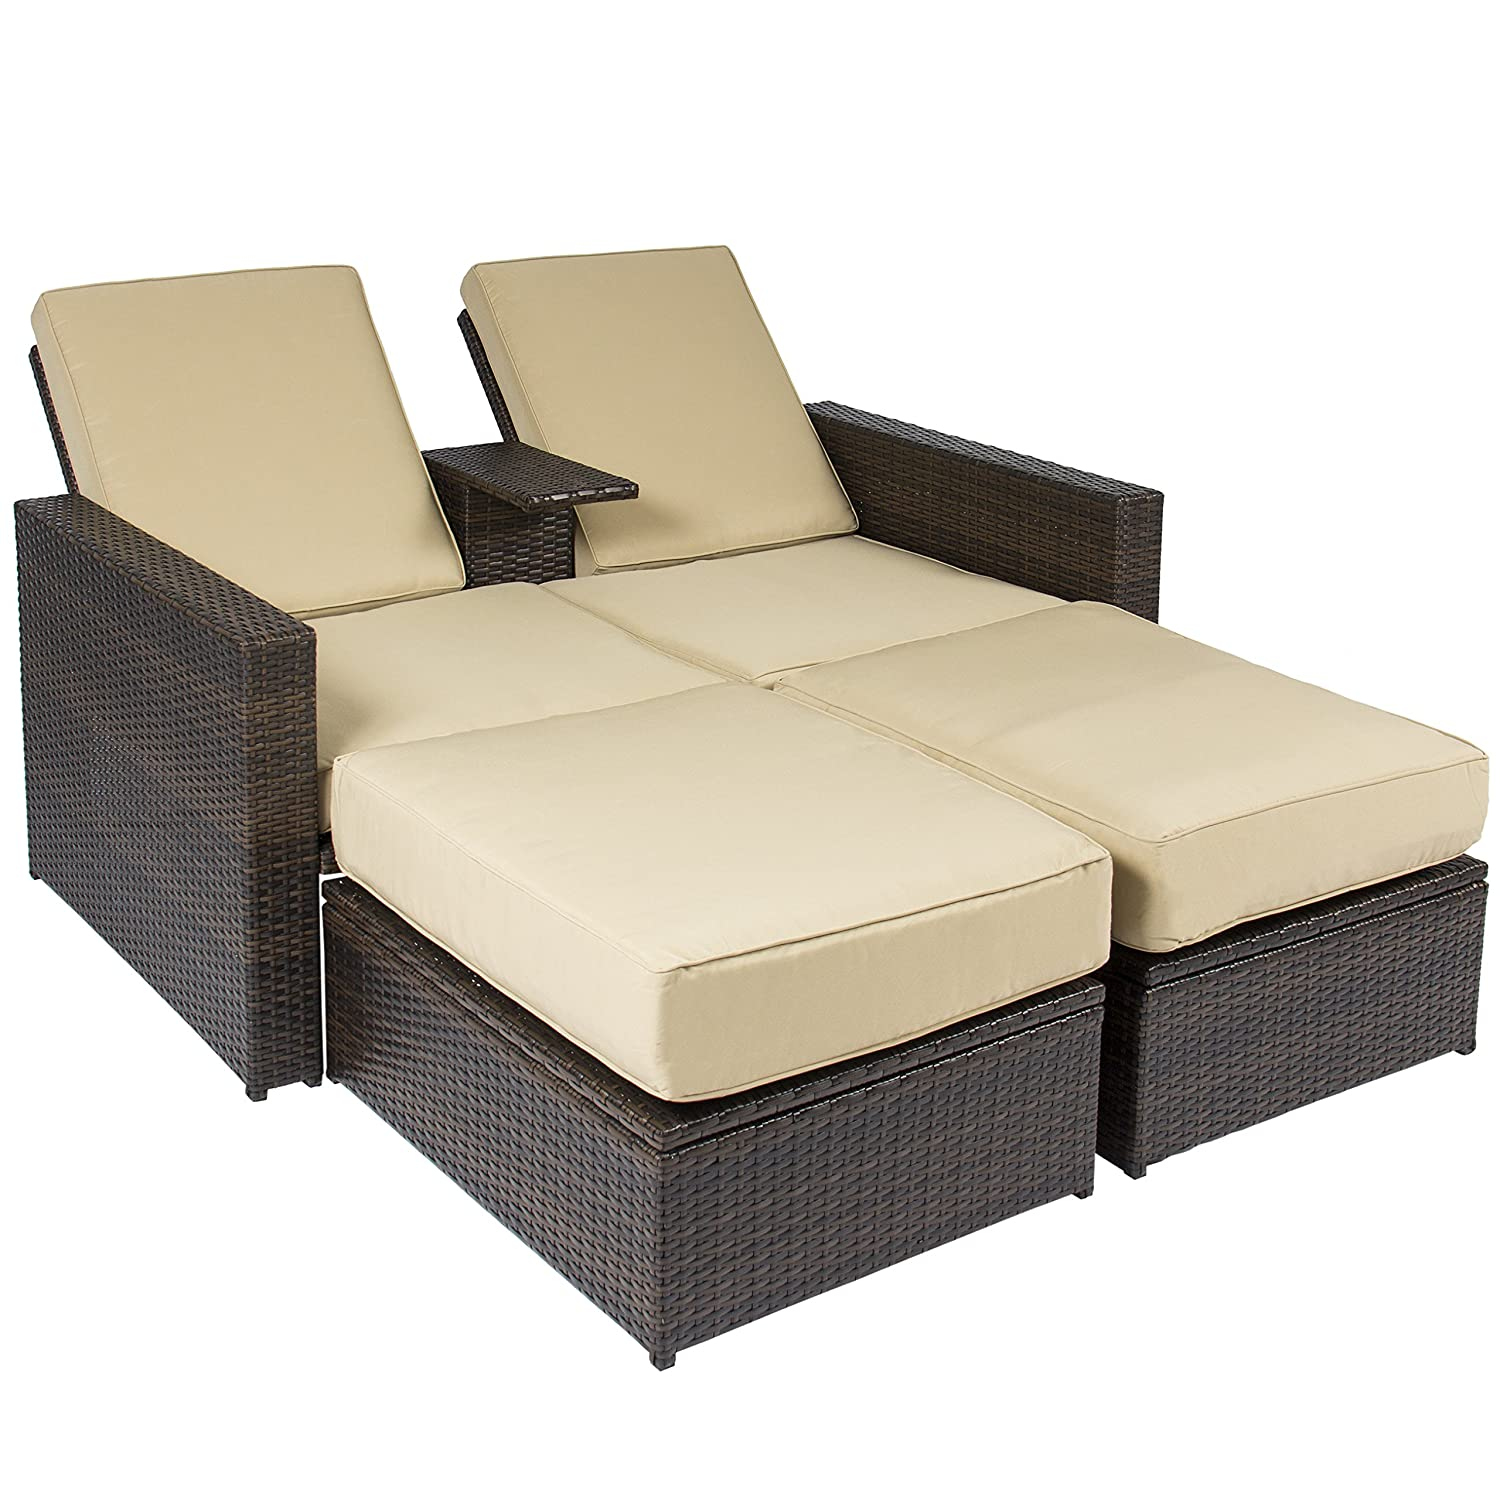 Amazon.com : Best Choice Products Outdoor 3pc Rattan Wicker Patio Love Seat  Lounge Chair Furniture Set Multi Purpose : Garden U0026 Outdoor